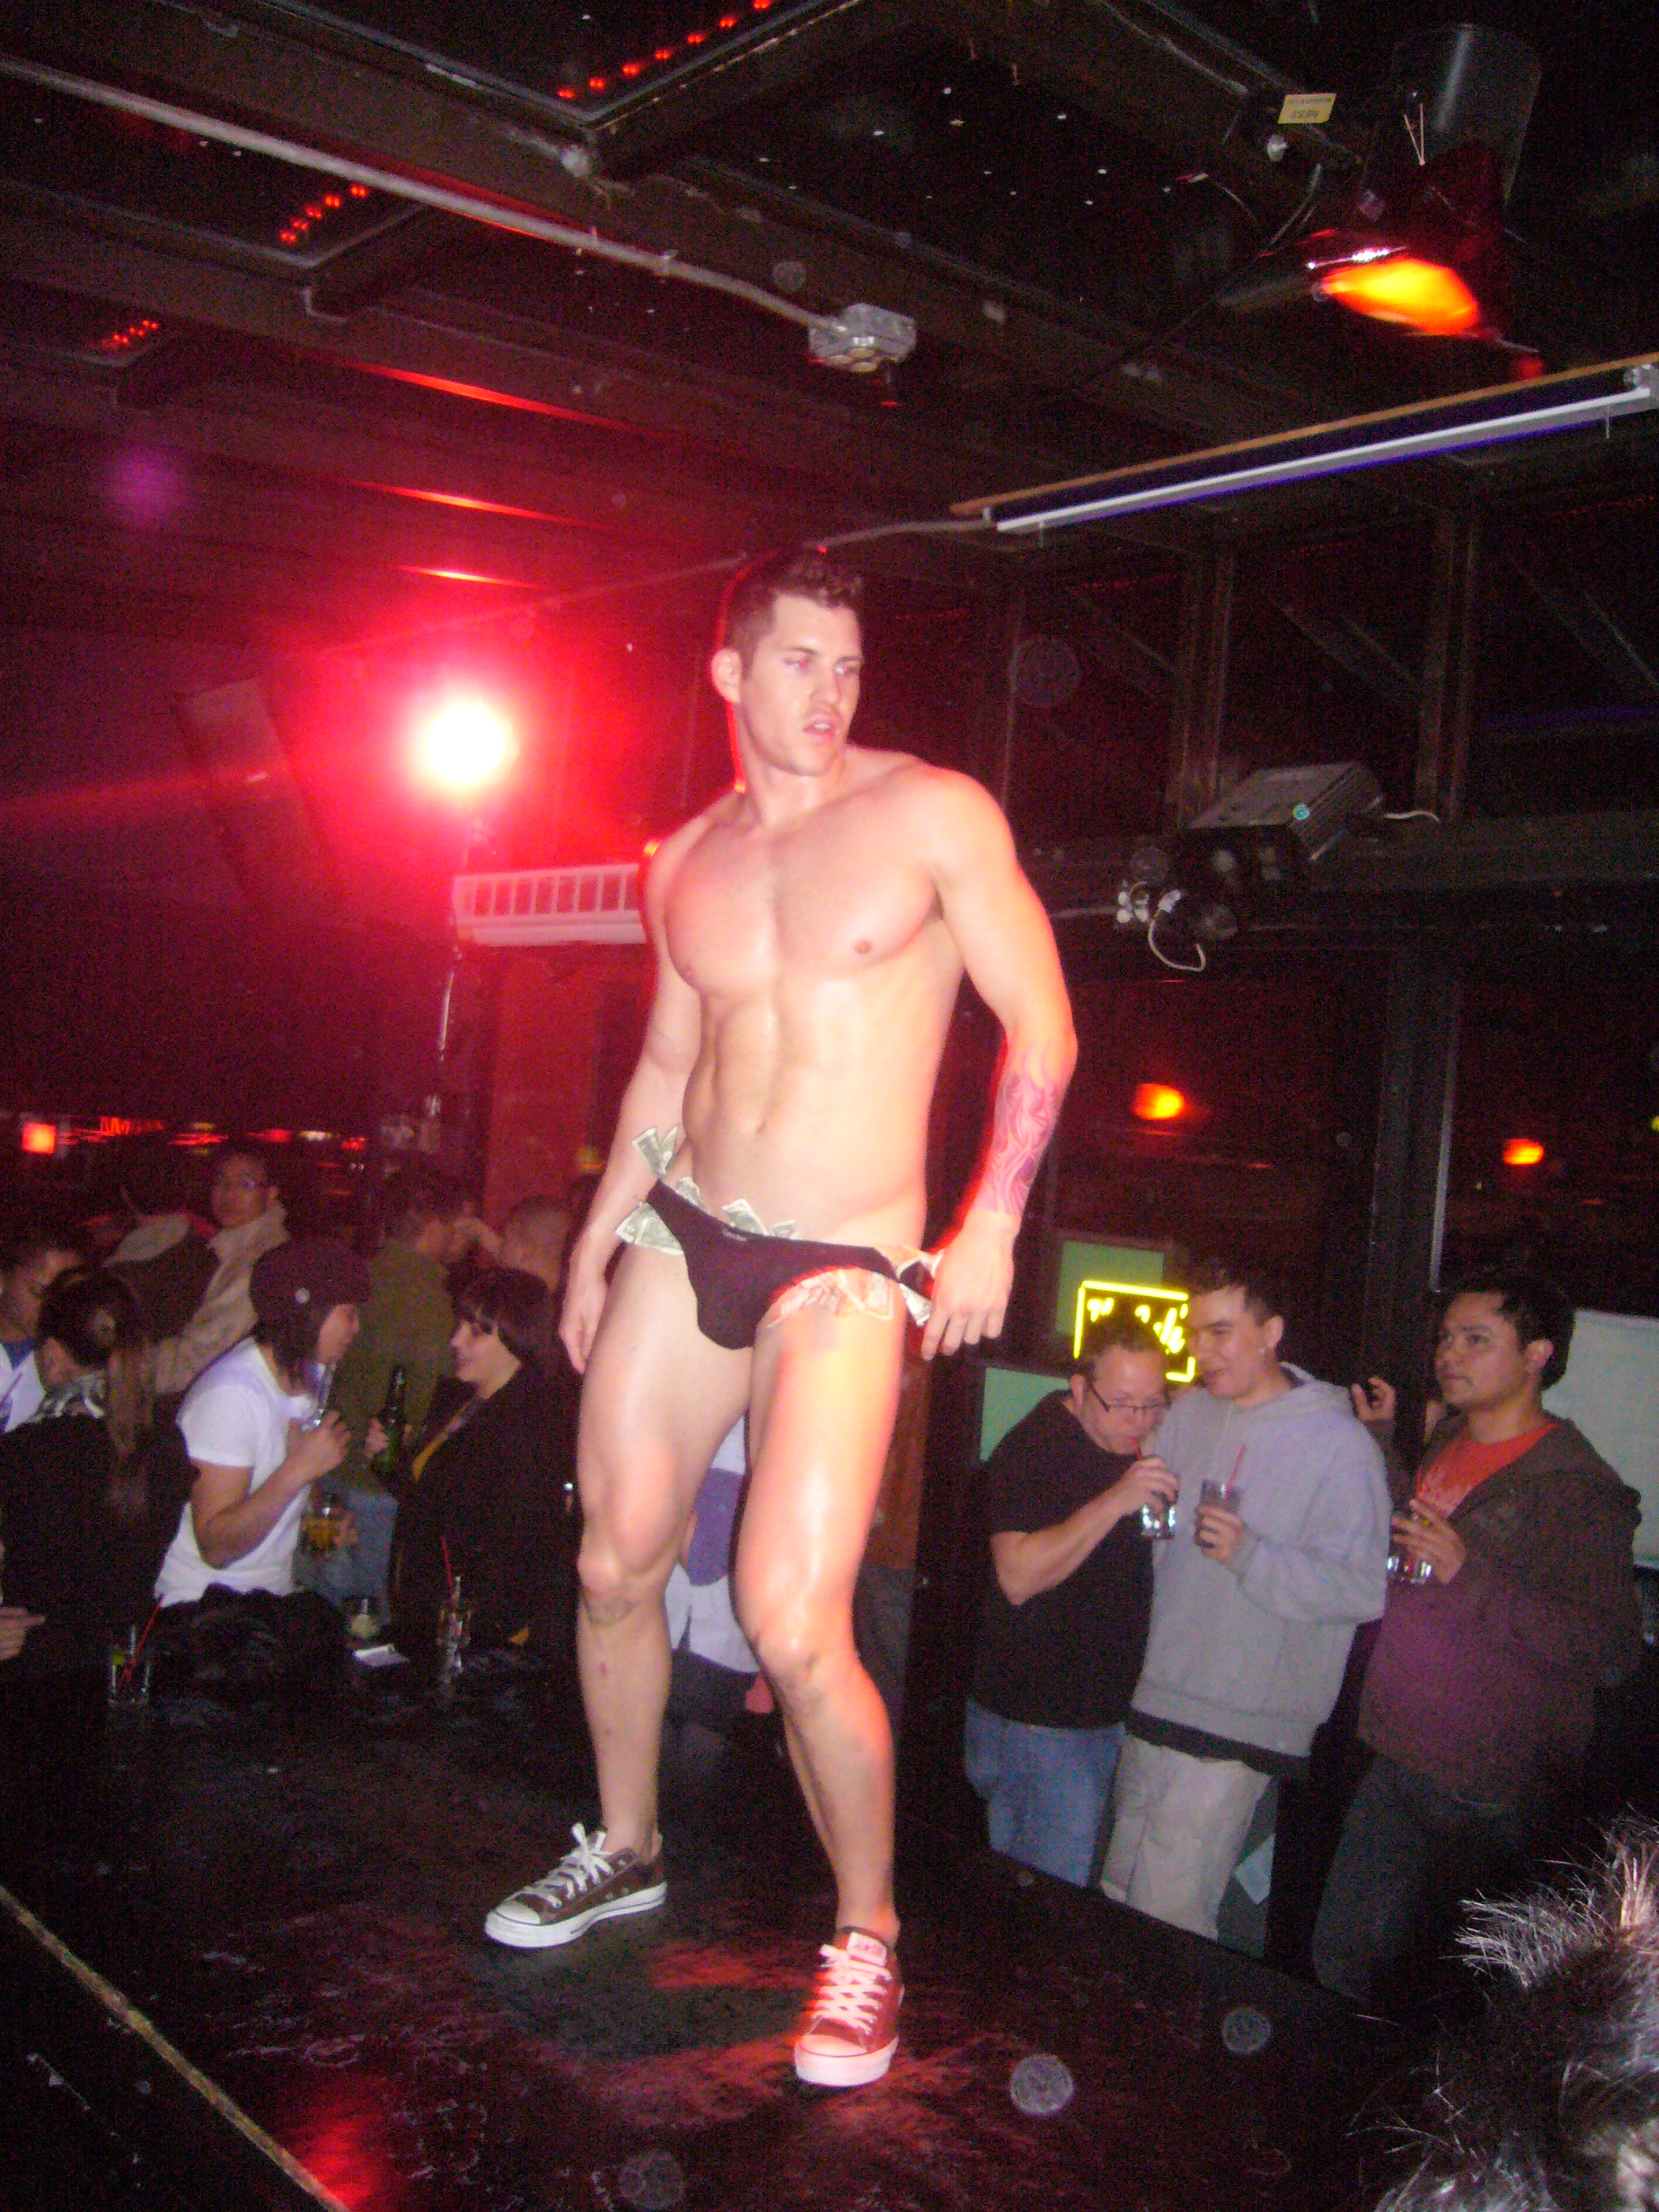 best of Clubs San francisco stripper